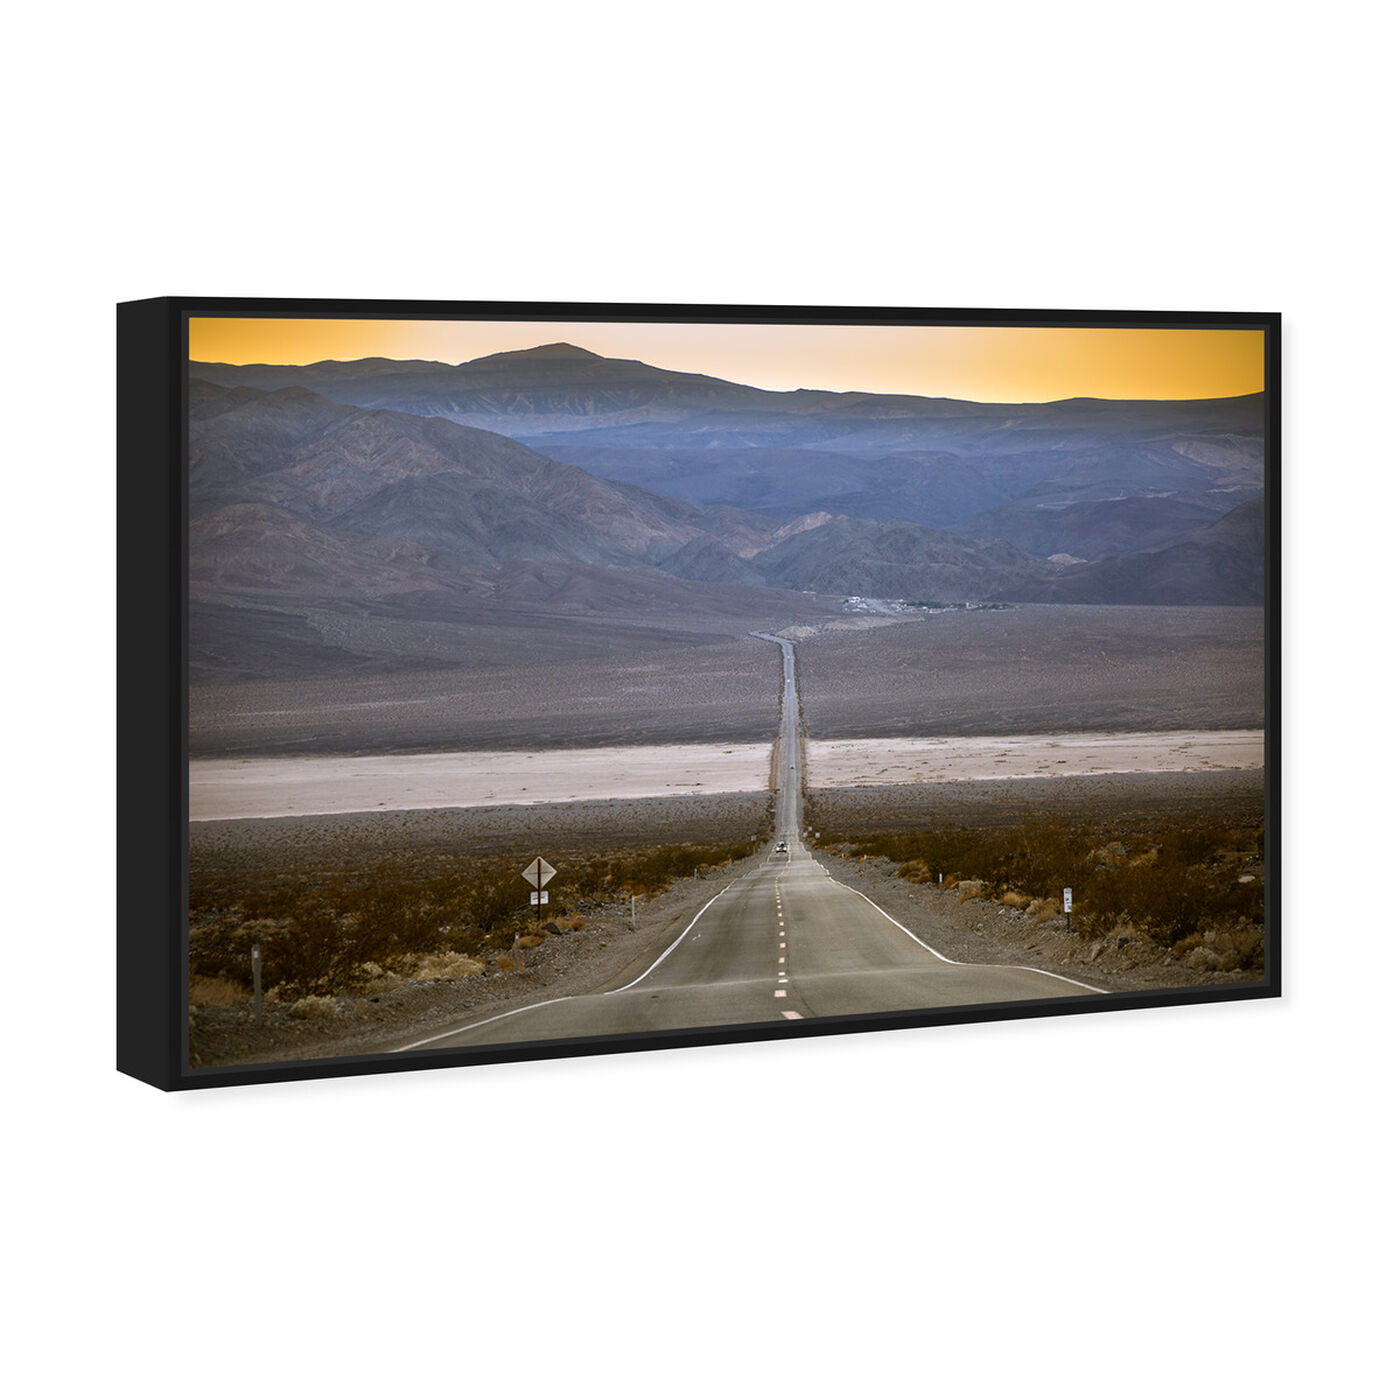 Angled view of Curro Cardenal - American Road IV featuring nature and landscape and mountains art.